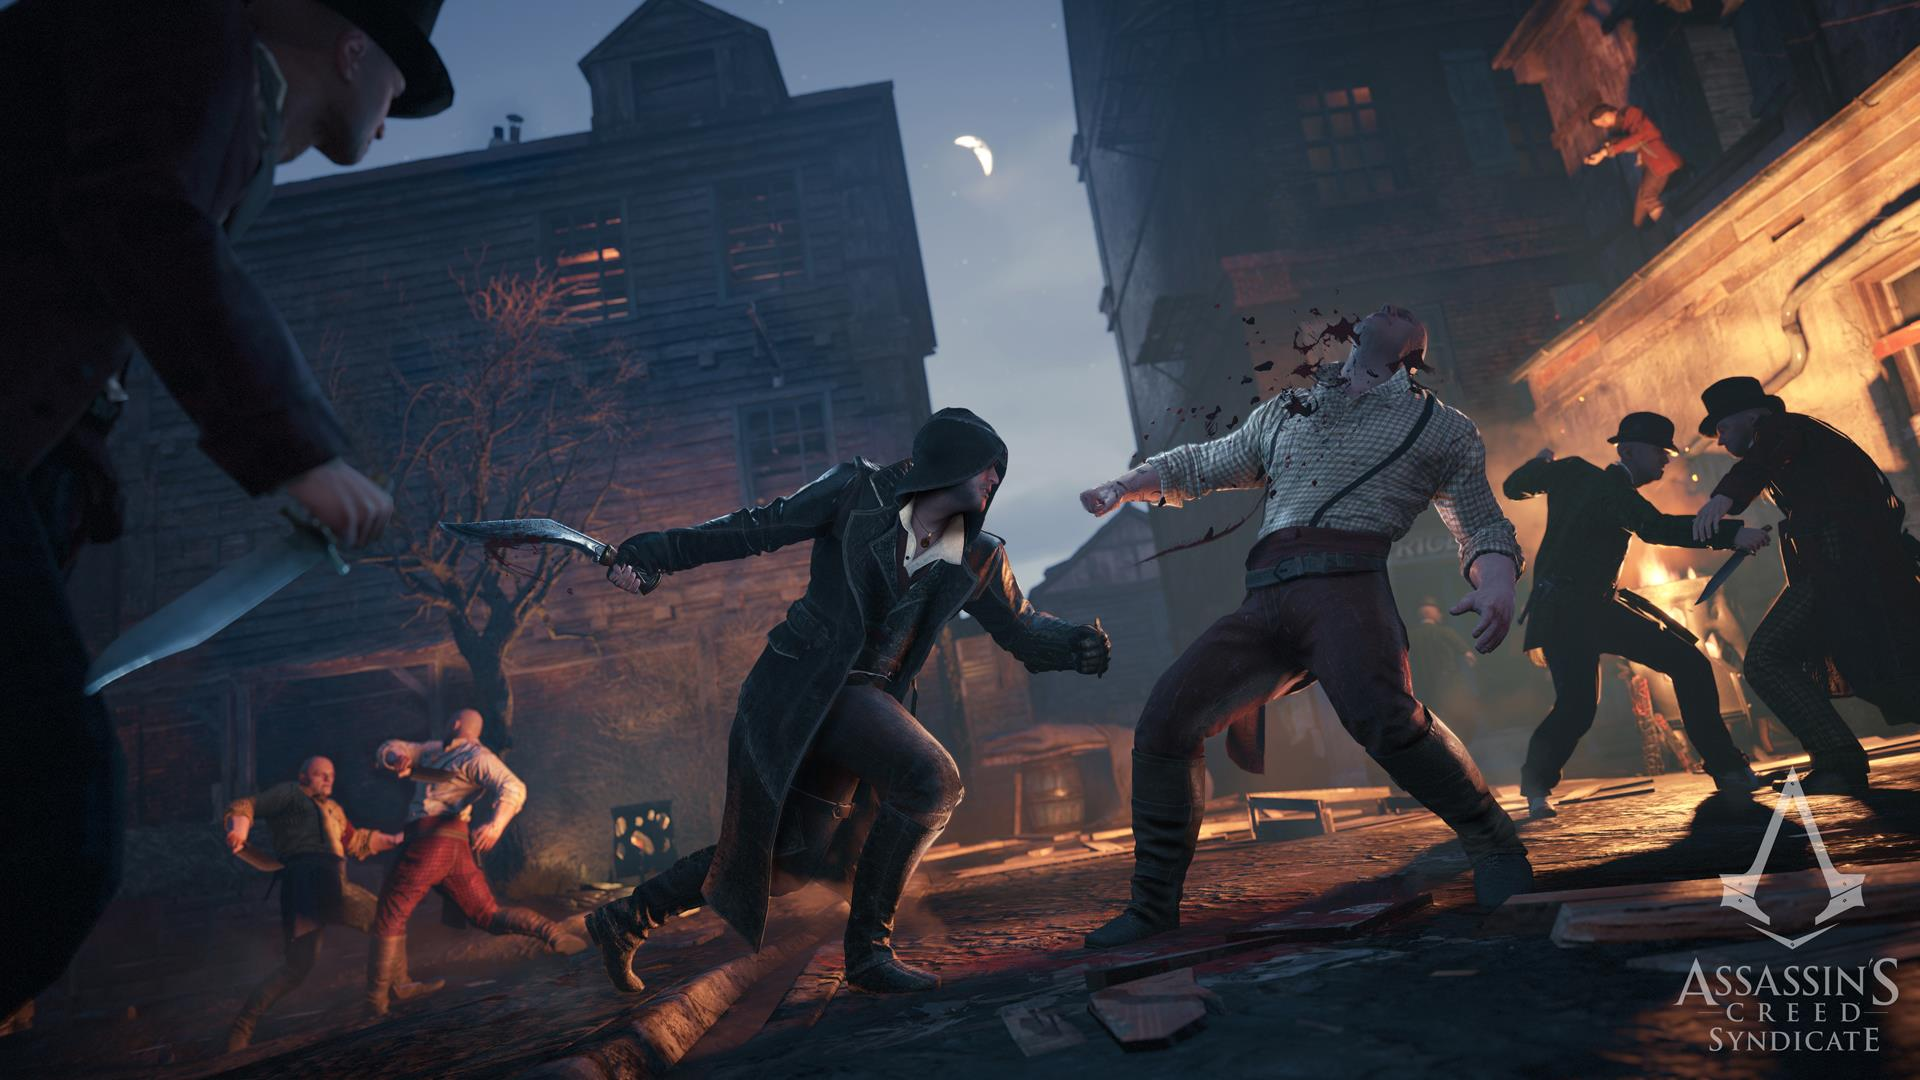 assassins_creed_syndicate_reveal_screen_2